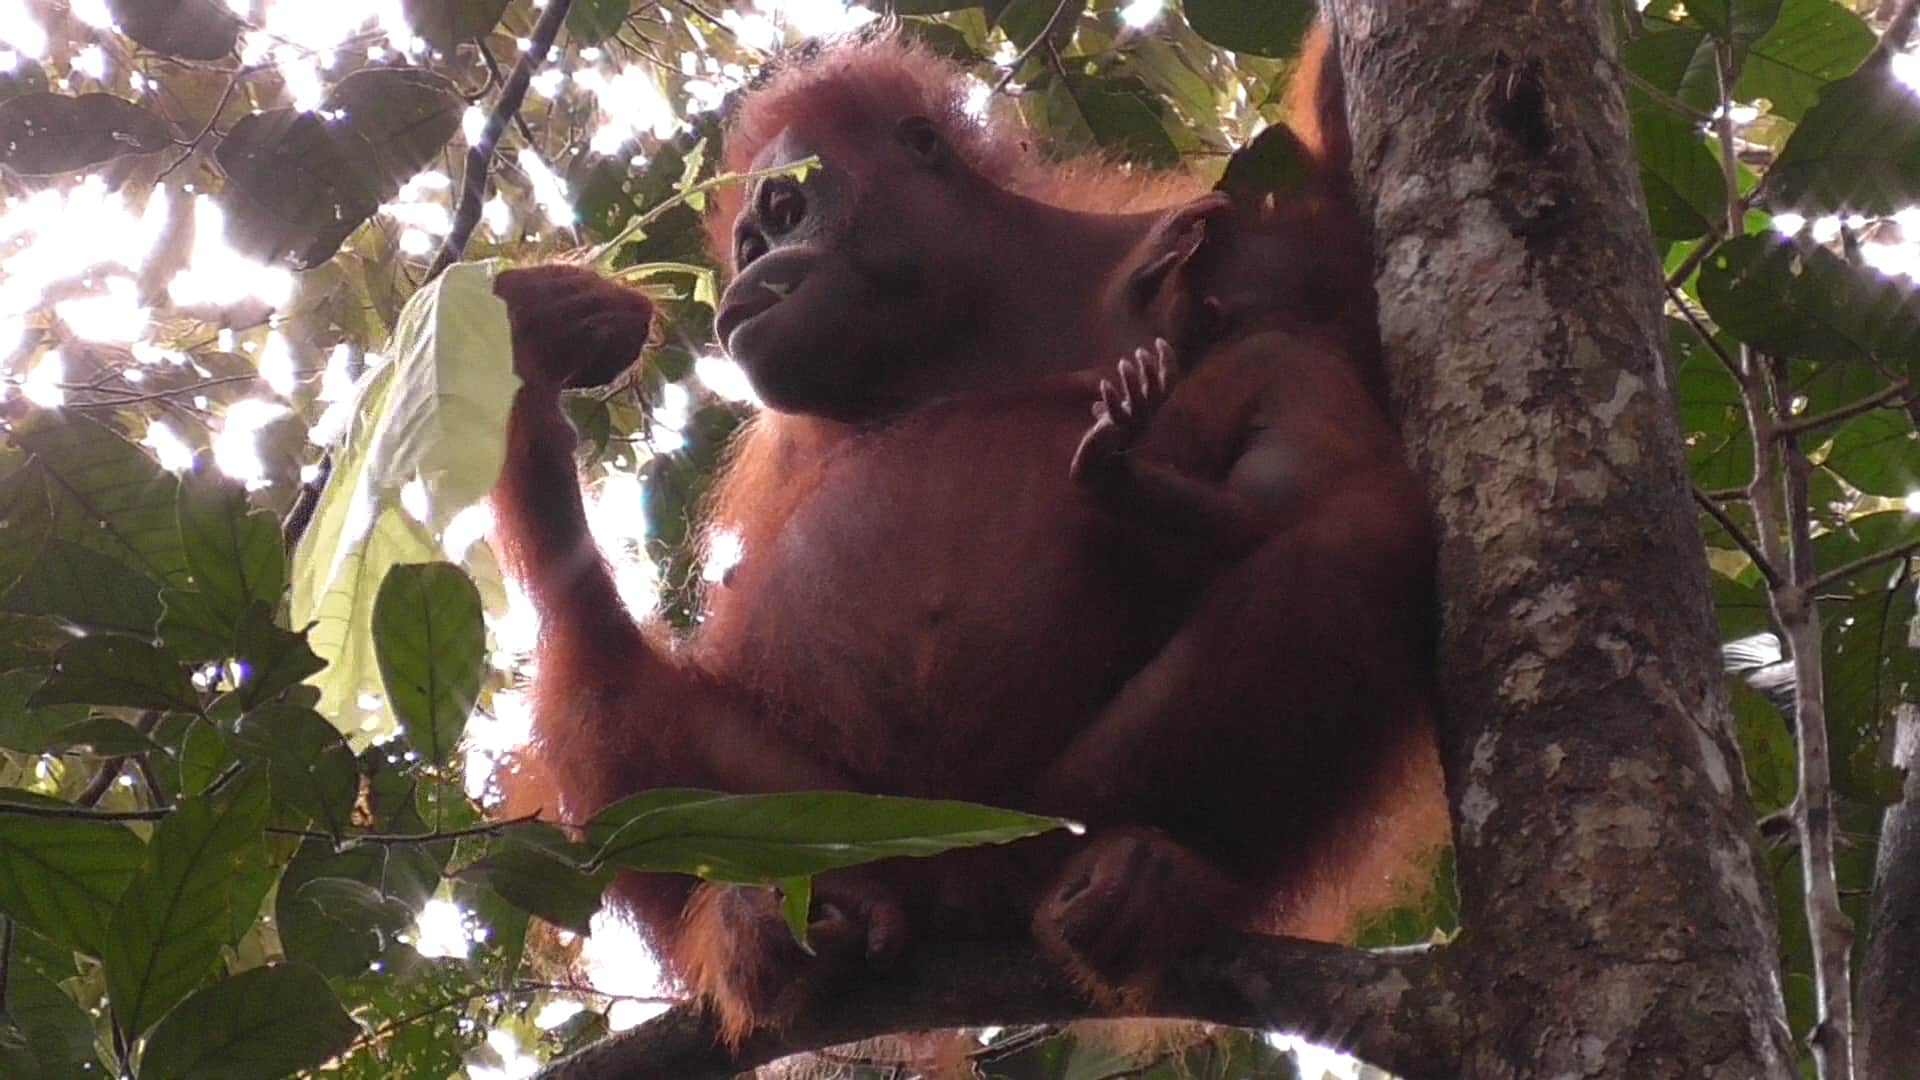 an overview of the endangered orangutan species essay Orangutans are one of the world's four great apes, which are our closest relatives the orangutan is also a unique species in other areas where it is diverting from other great apes (chimpanzee the orangutan is losing its home at an alarming rate, and is now considered critically endangered by the.